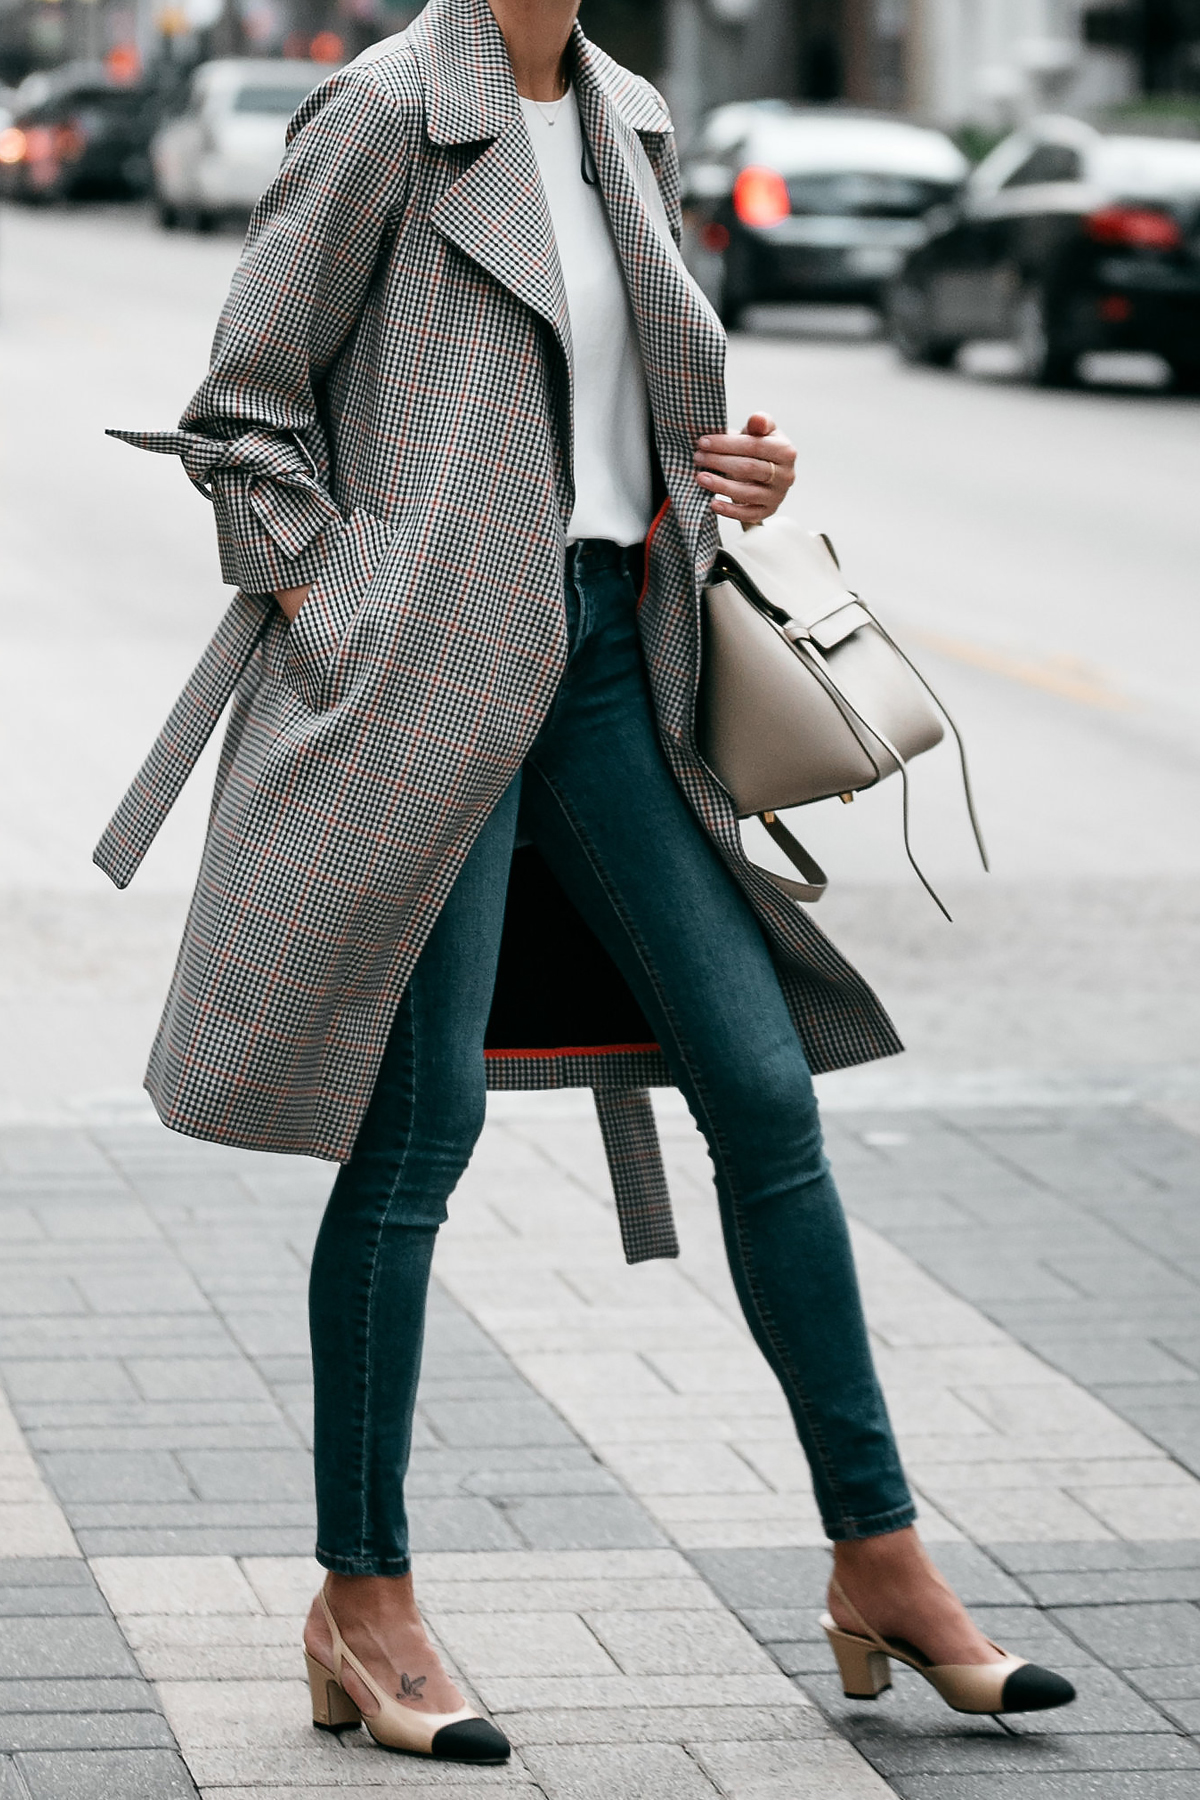 Topshop Plaid Trench Coat Denim Skinny Jeans Outfit Chanel Slingbacks Fashion Jackson Dallas Blogger Fashion Blogger Street Style